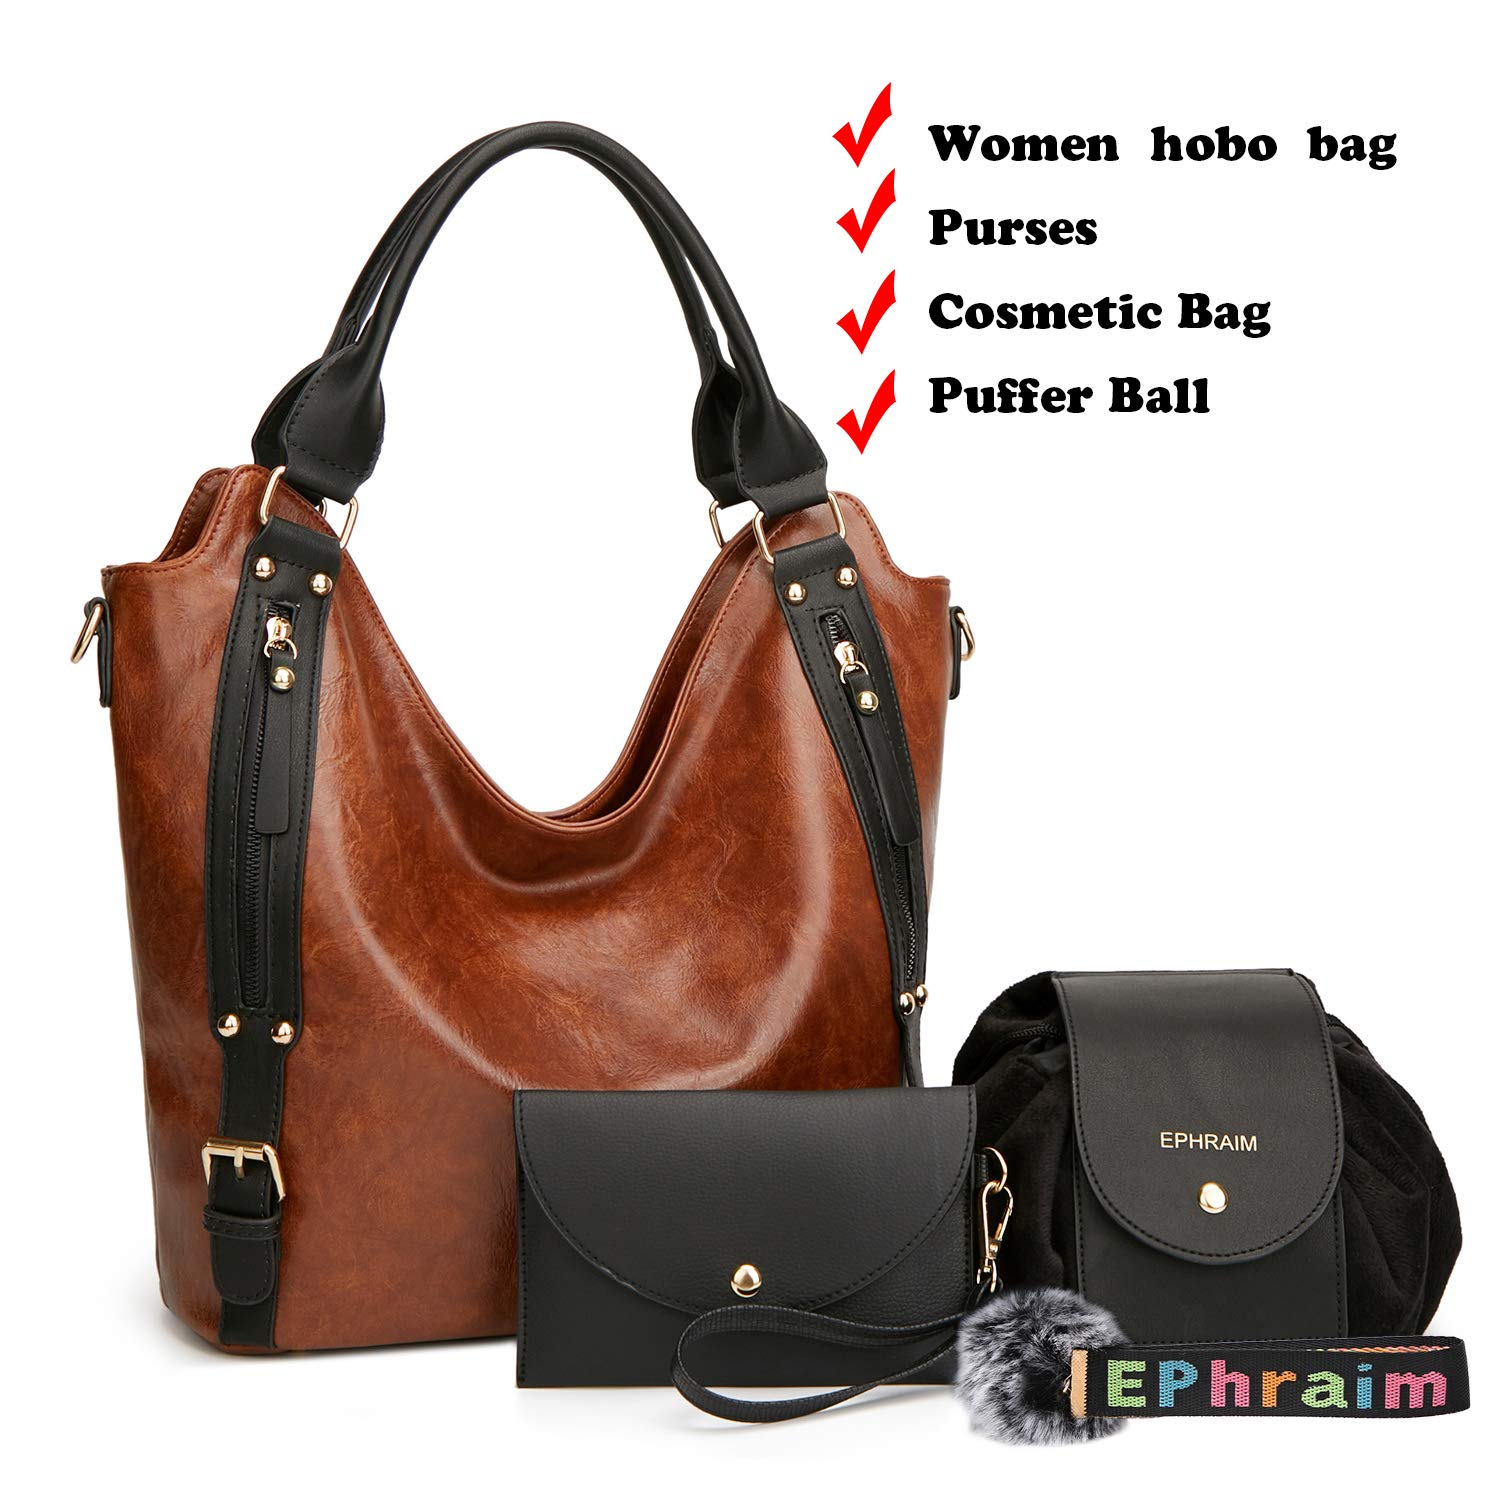 Women Leather Purse Phone Bags Handbags with Fashion Large Capacity Bags 4pcs (Brown)